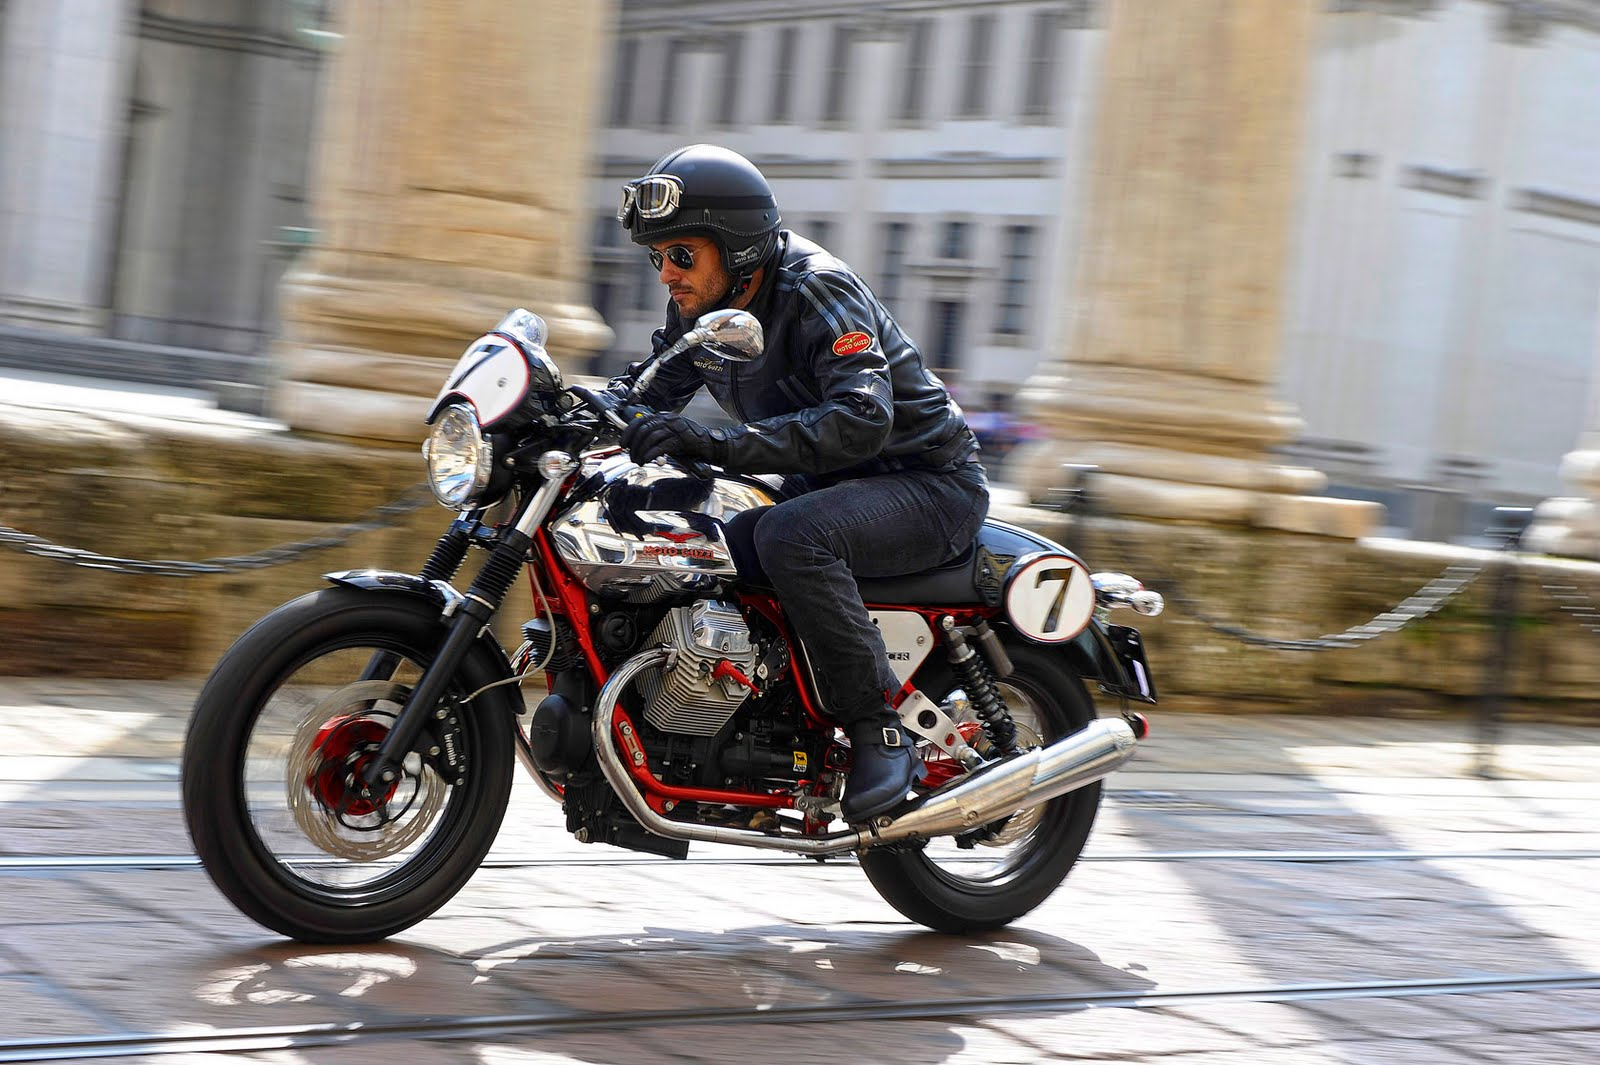 Moto Guzzi V7 Racer Limited Edition 2011 images #109584